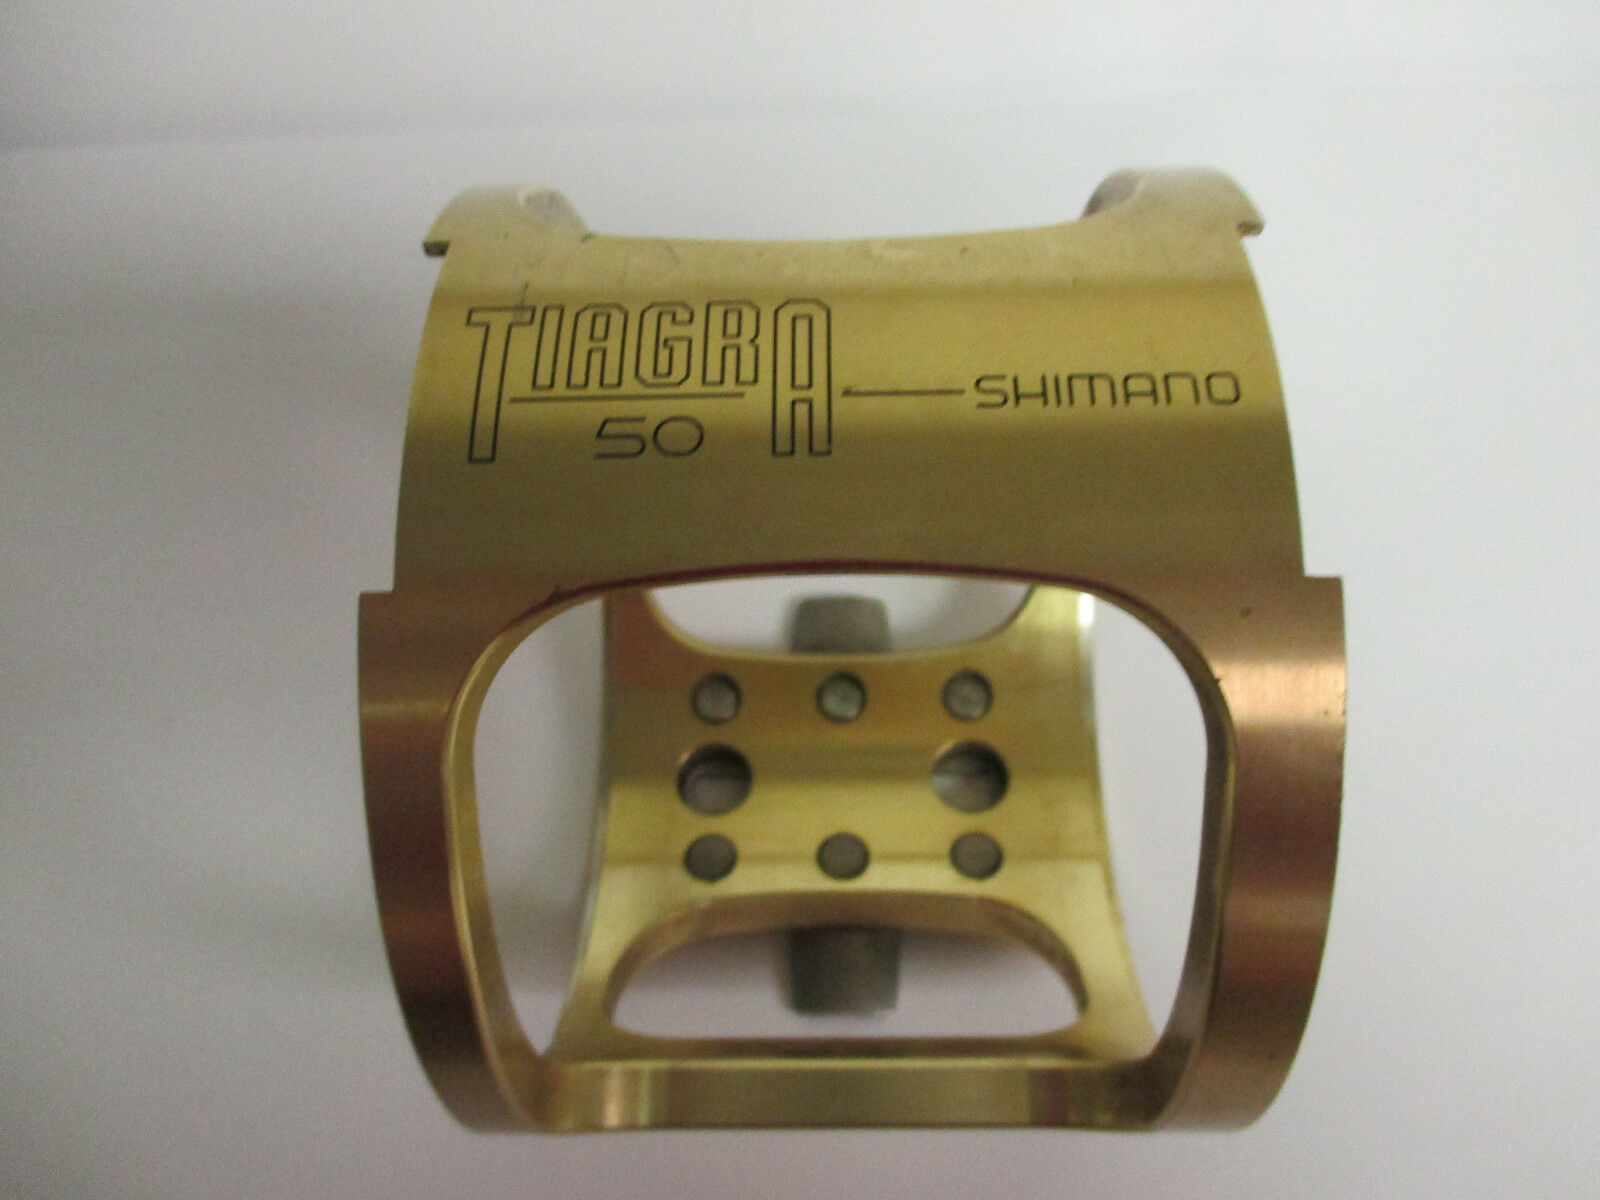 USED SHIMANO SHIMANO SHIMANO BIG GAME REEL PART - Tiagra 50 - Frame 4605f3